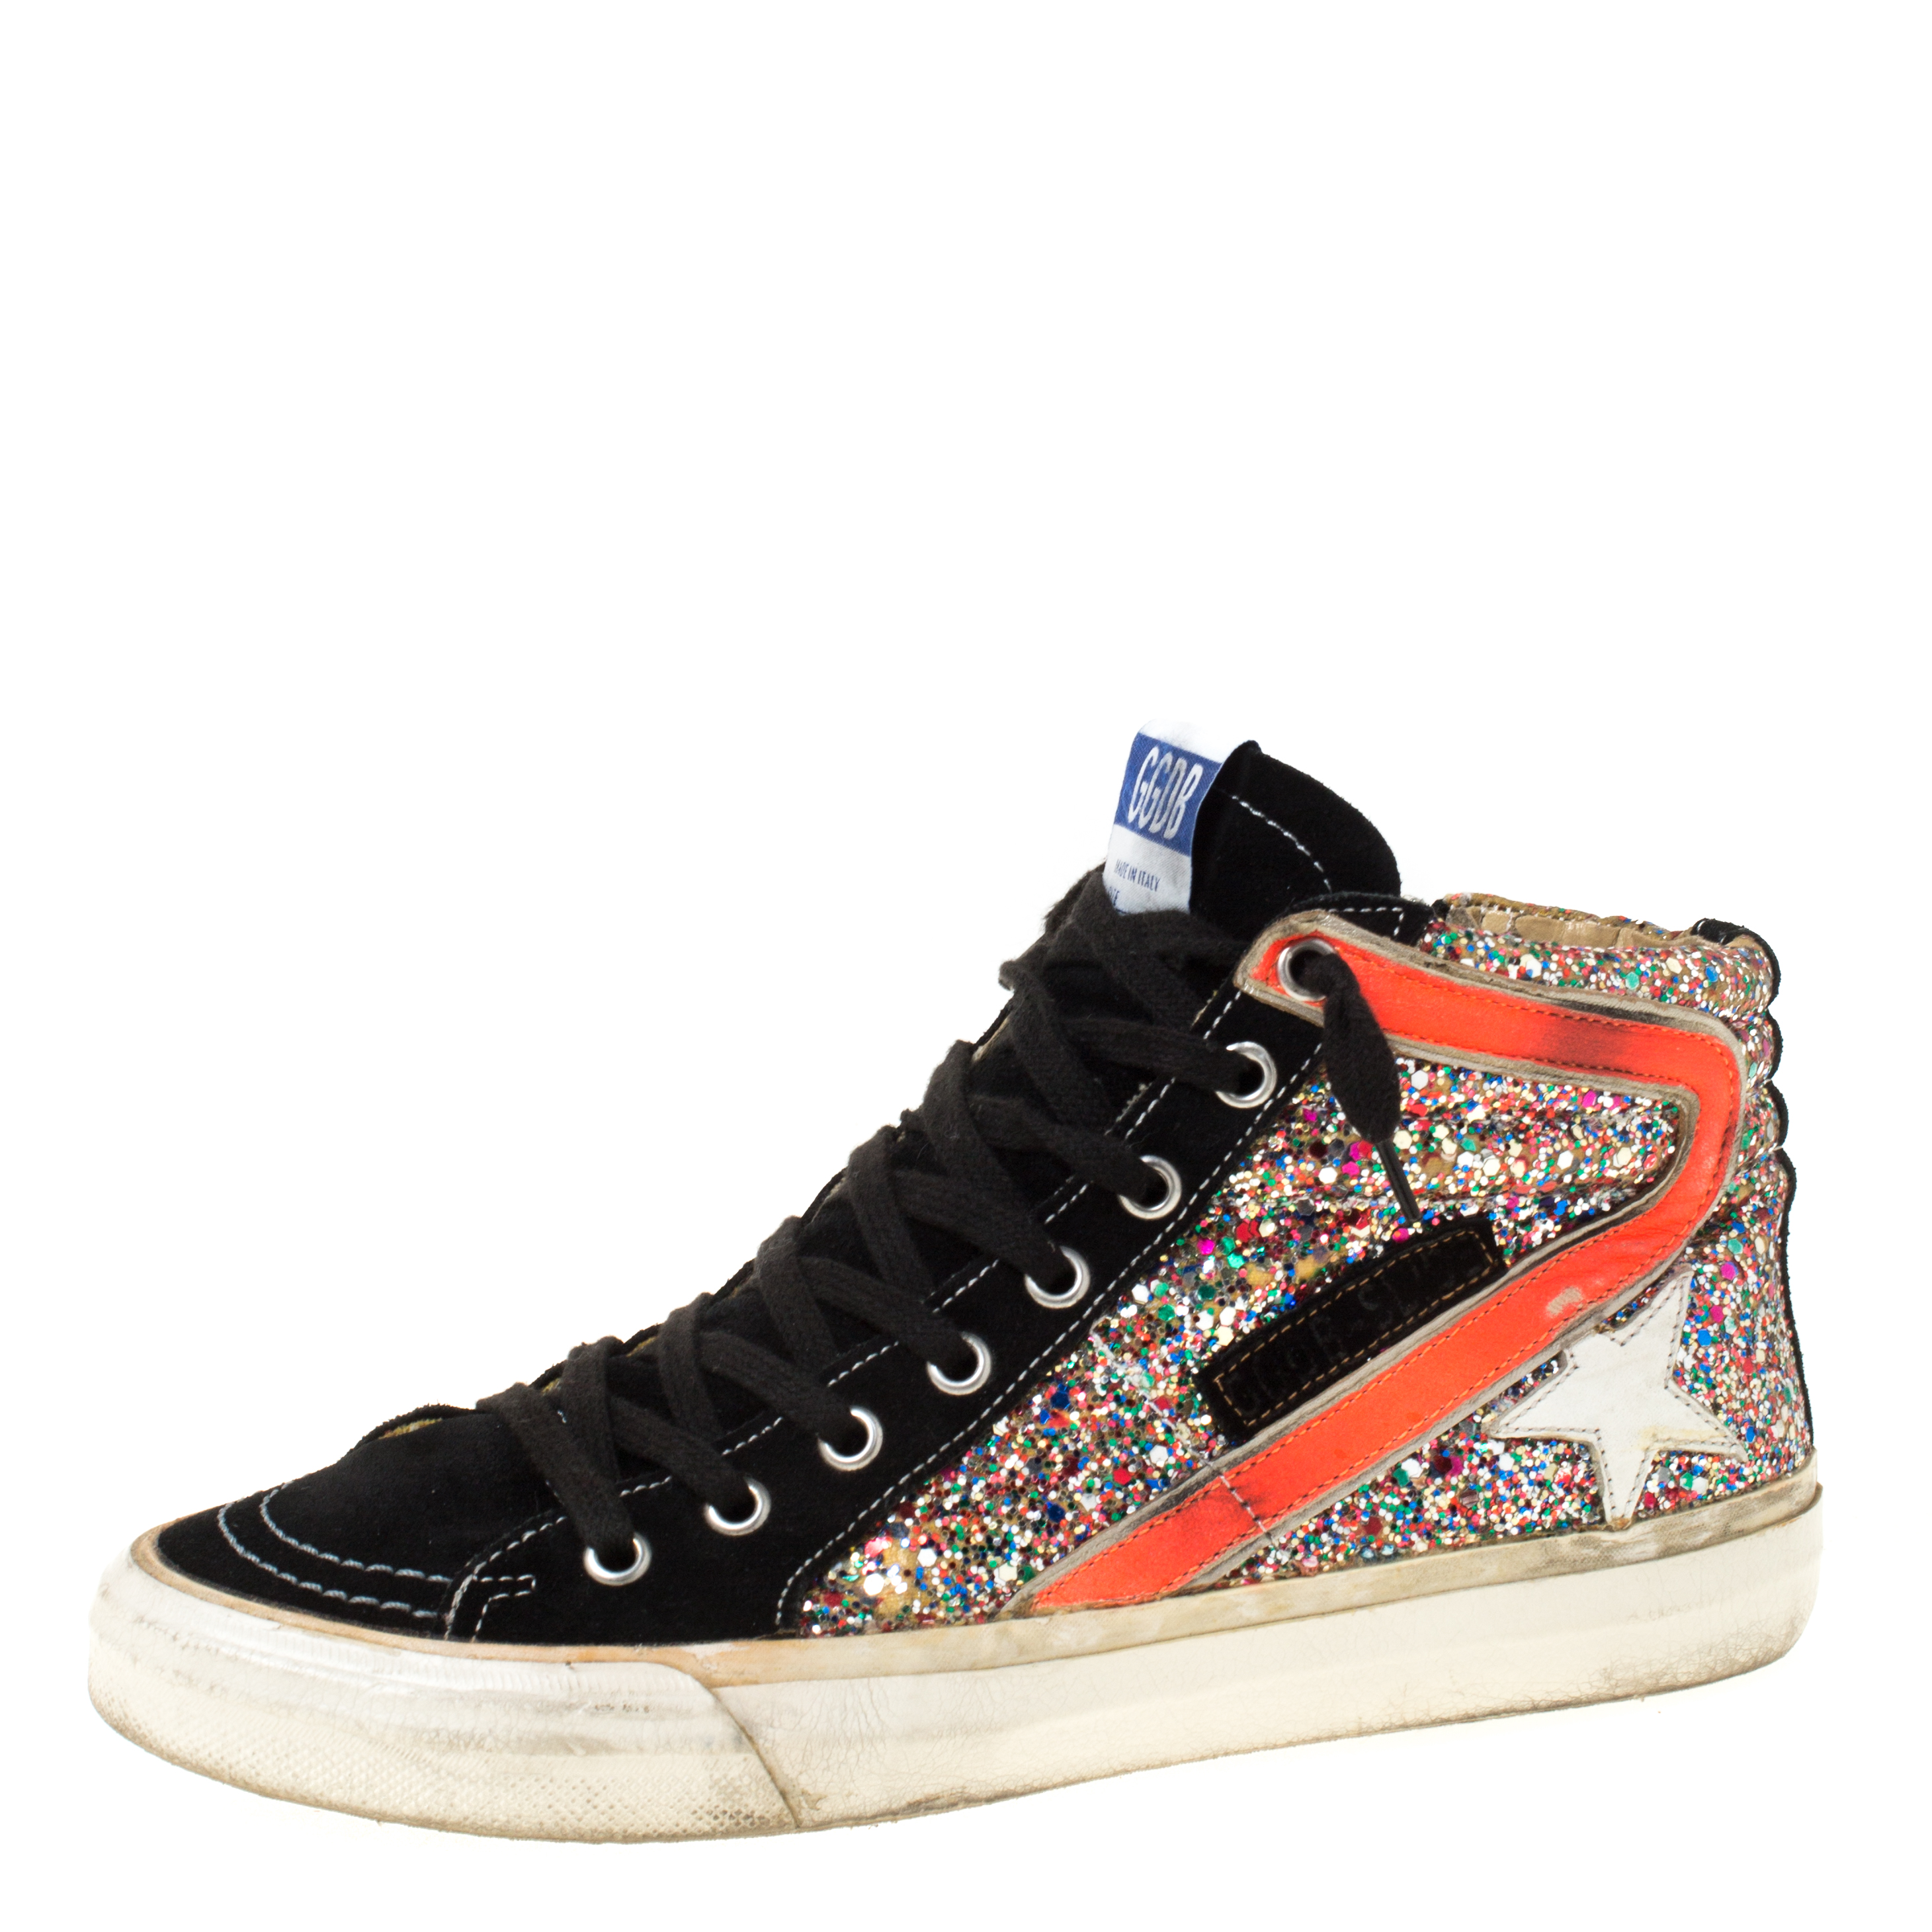 Glitter Slide High Top Sneakers Size 37